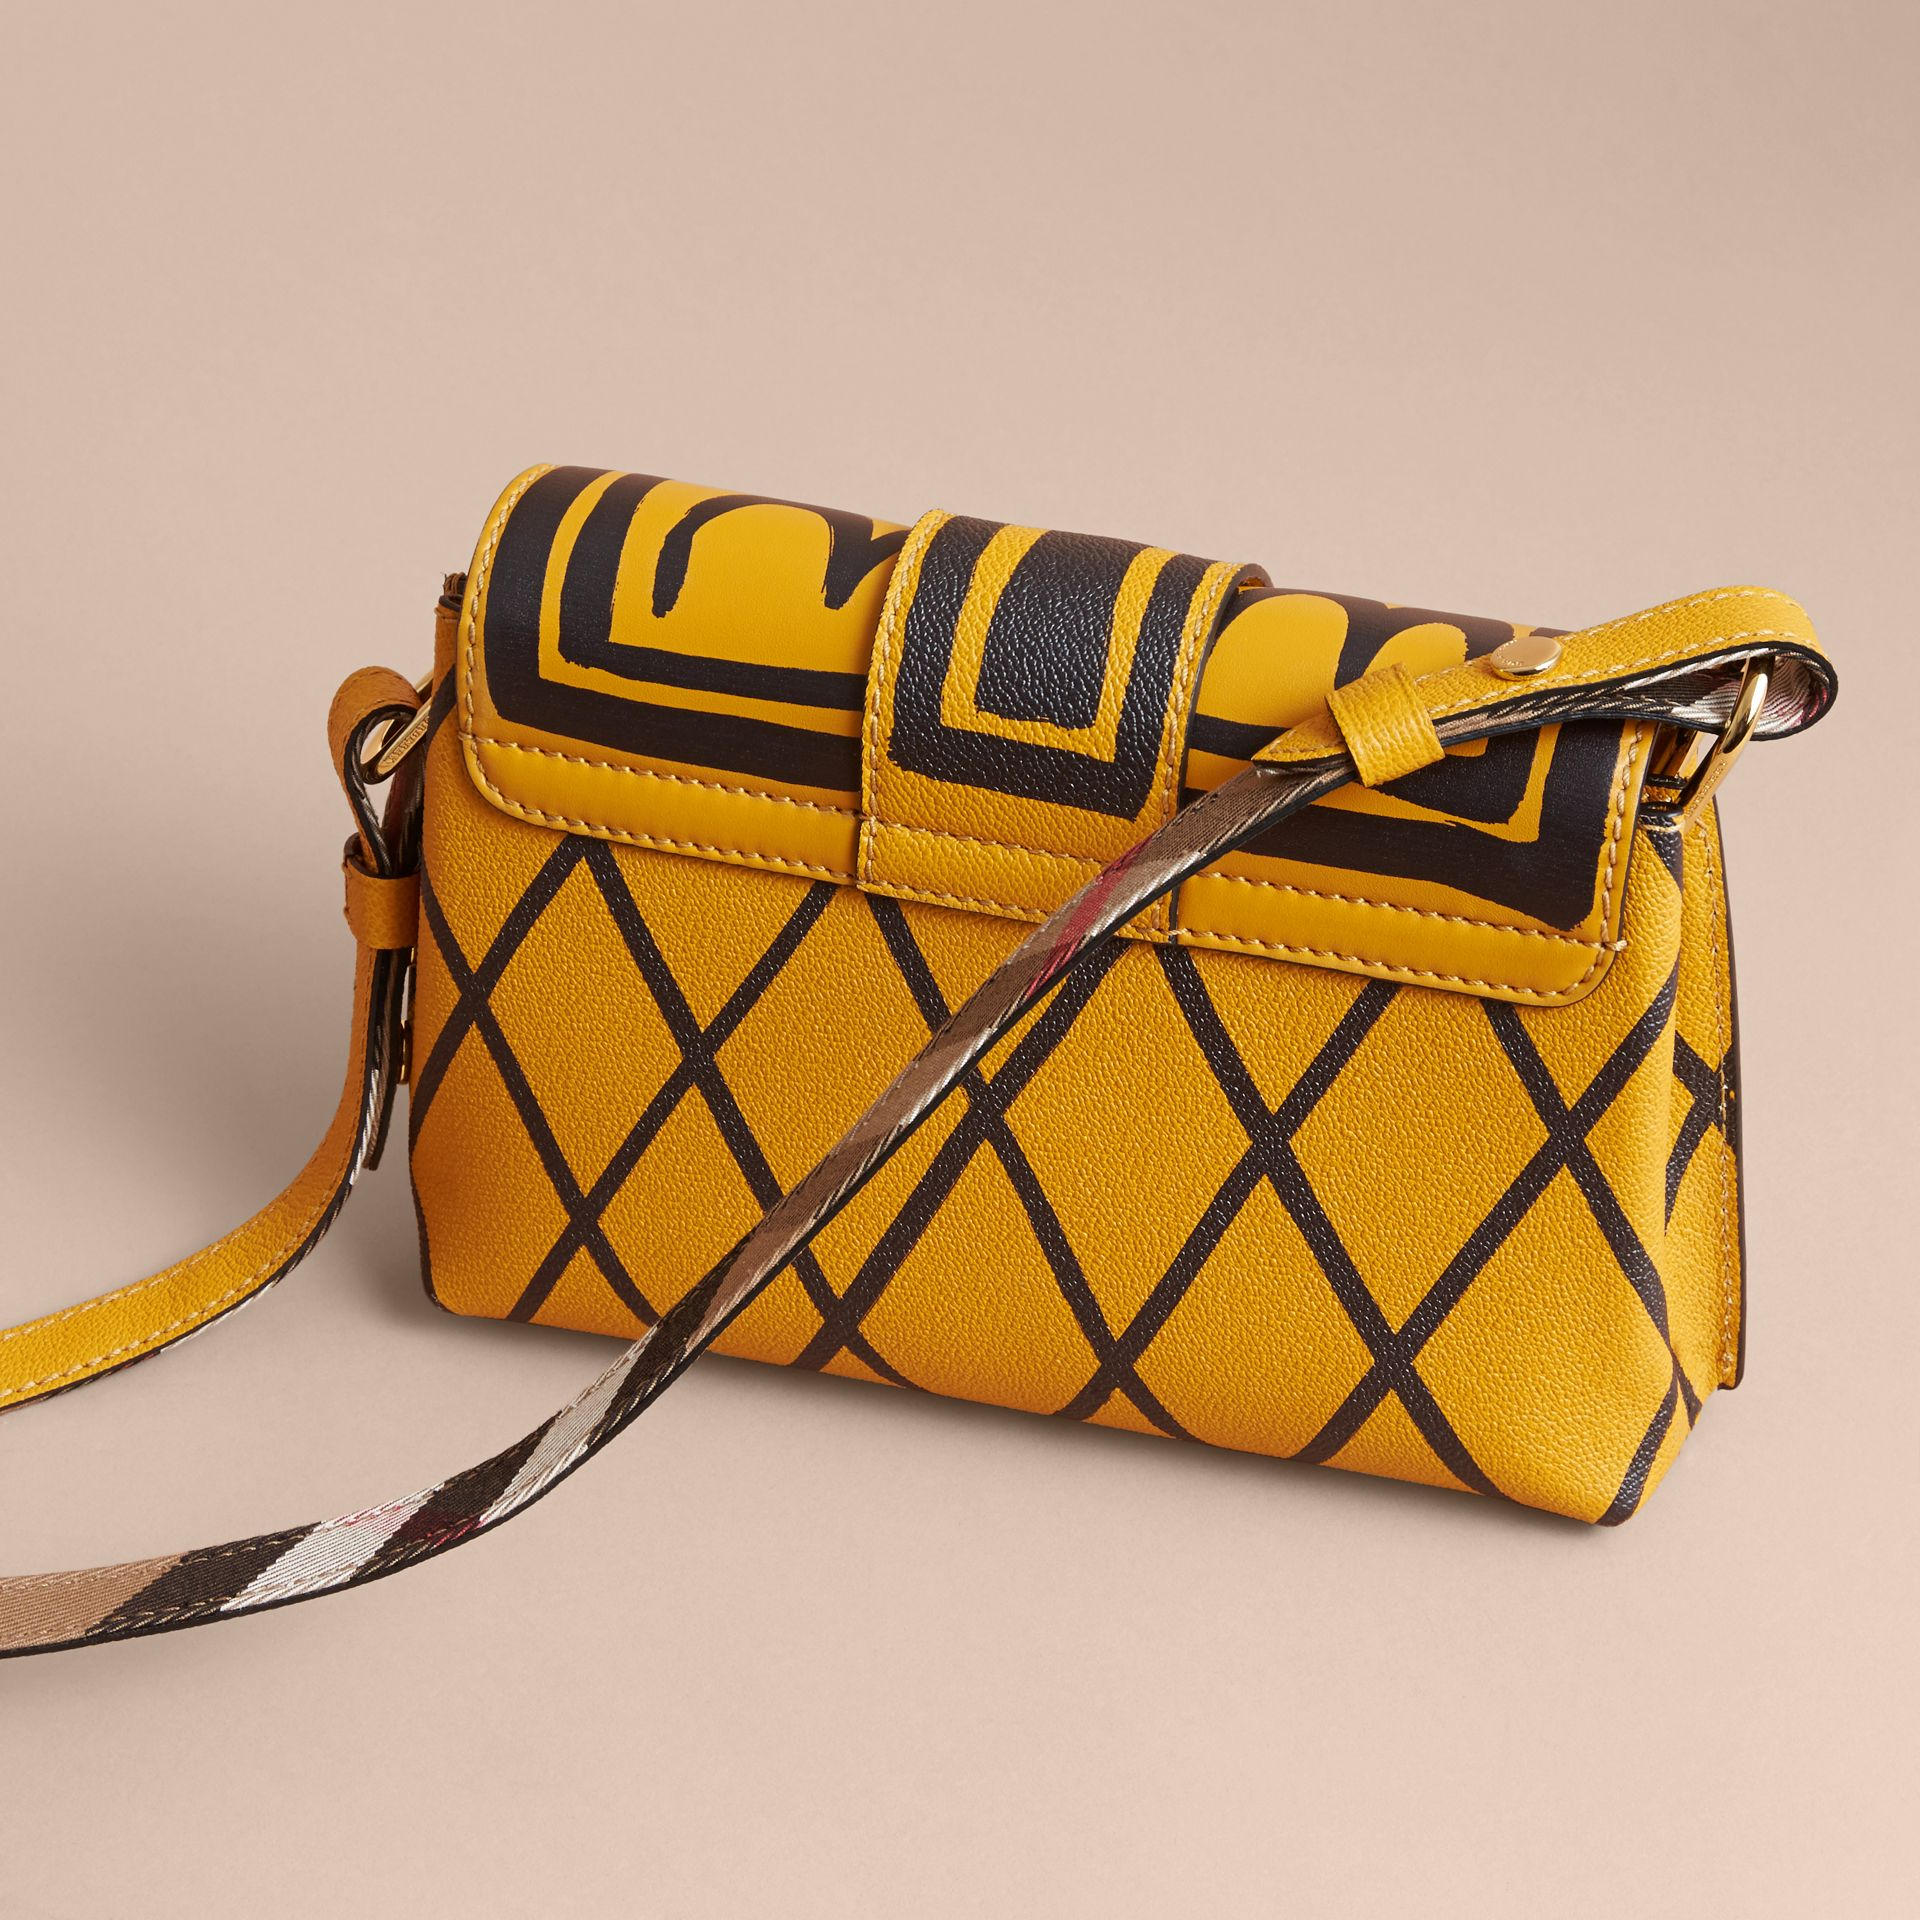 The Buckle Crossbody Bag in Trompe L'oeil Leather in Bright Straw - gallery image 4